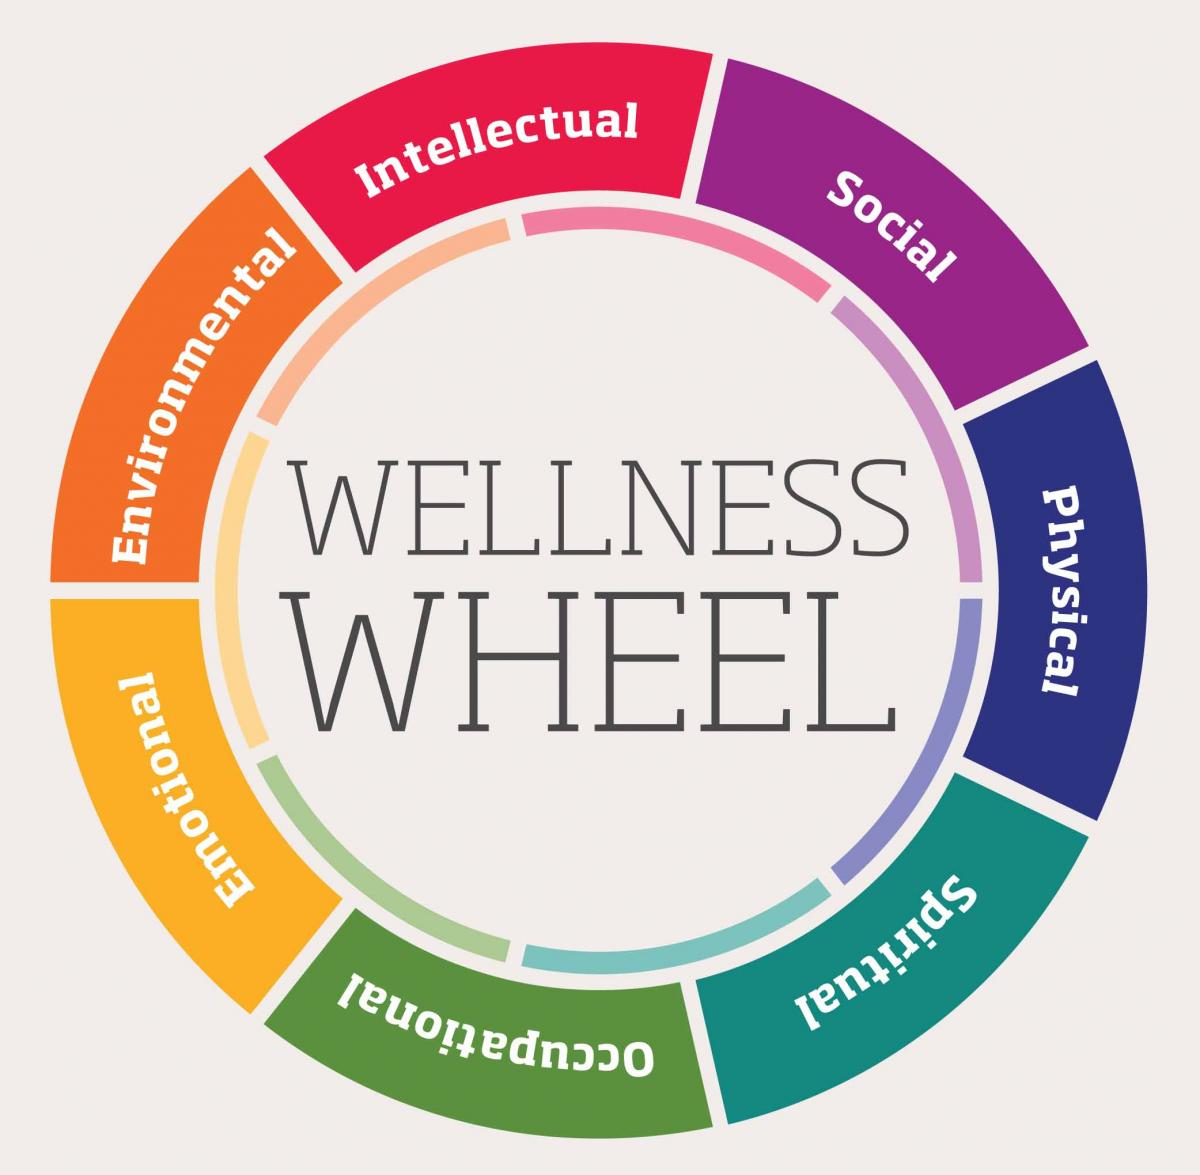 Worksheets Wellness Wheel Worksheet wellness wheel worksheet precommunity printables worksheets templates and 17 best images about positive psychology on pinterest anxiety